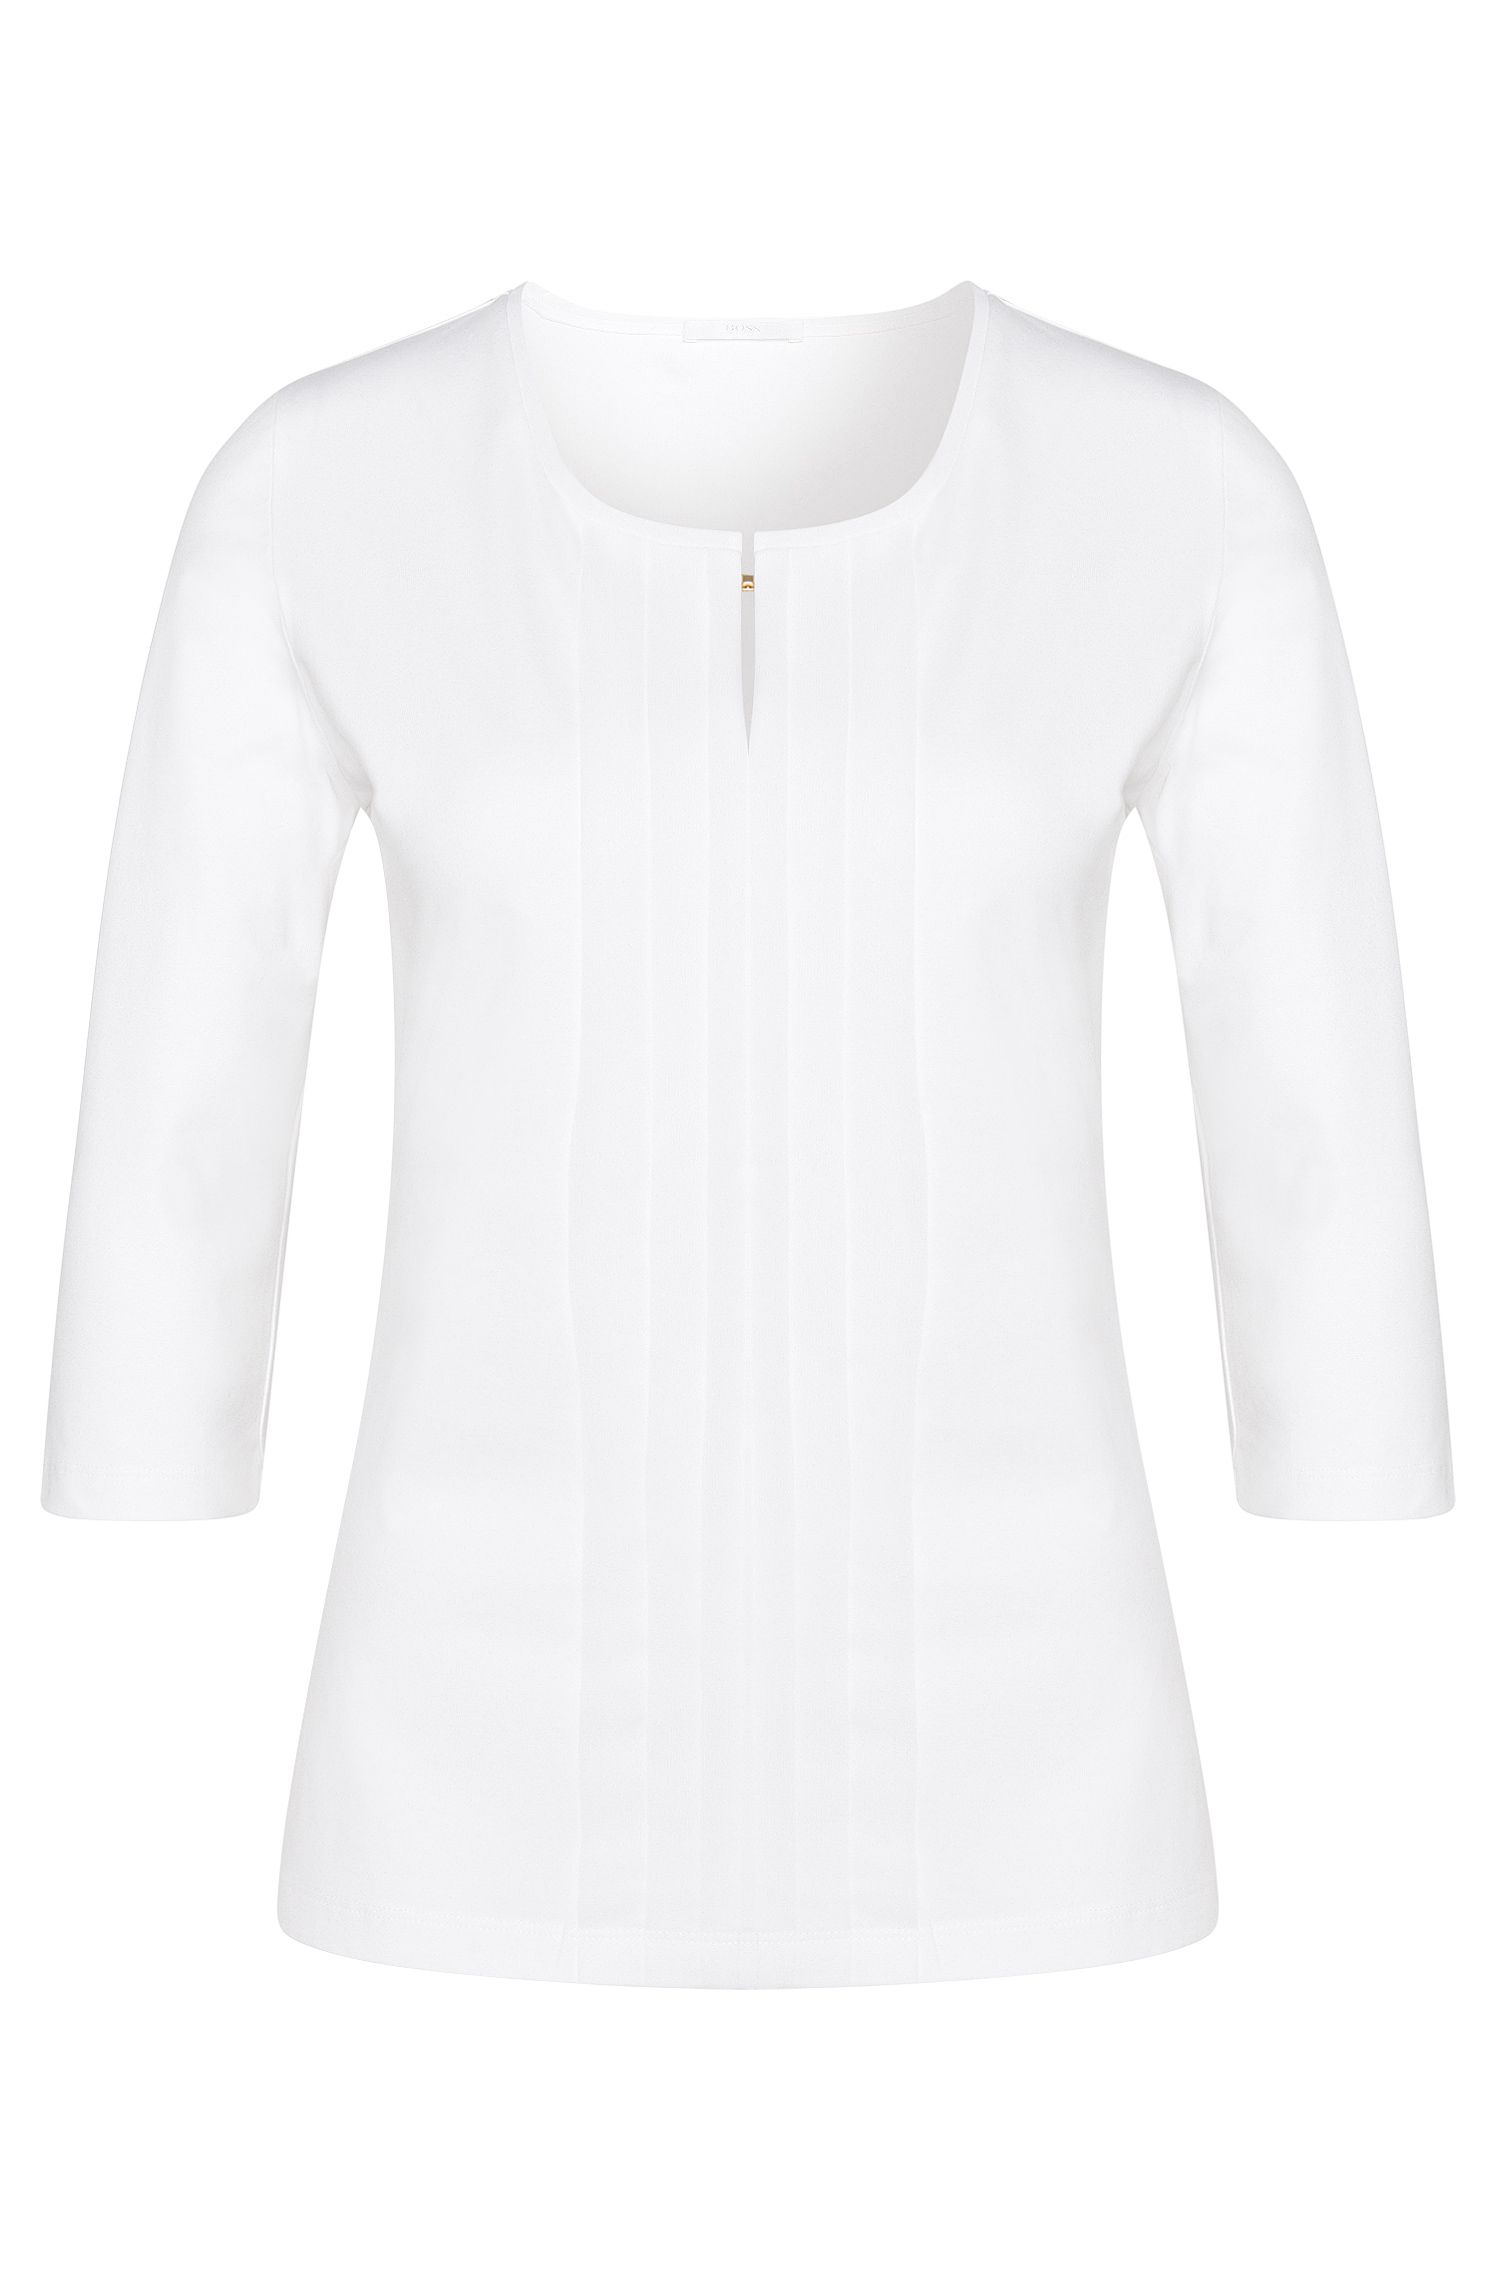 Jersey top with pleated detail